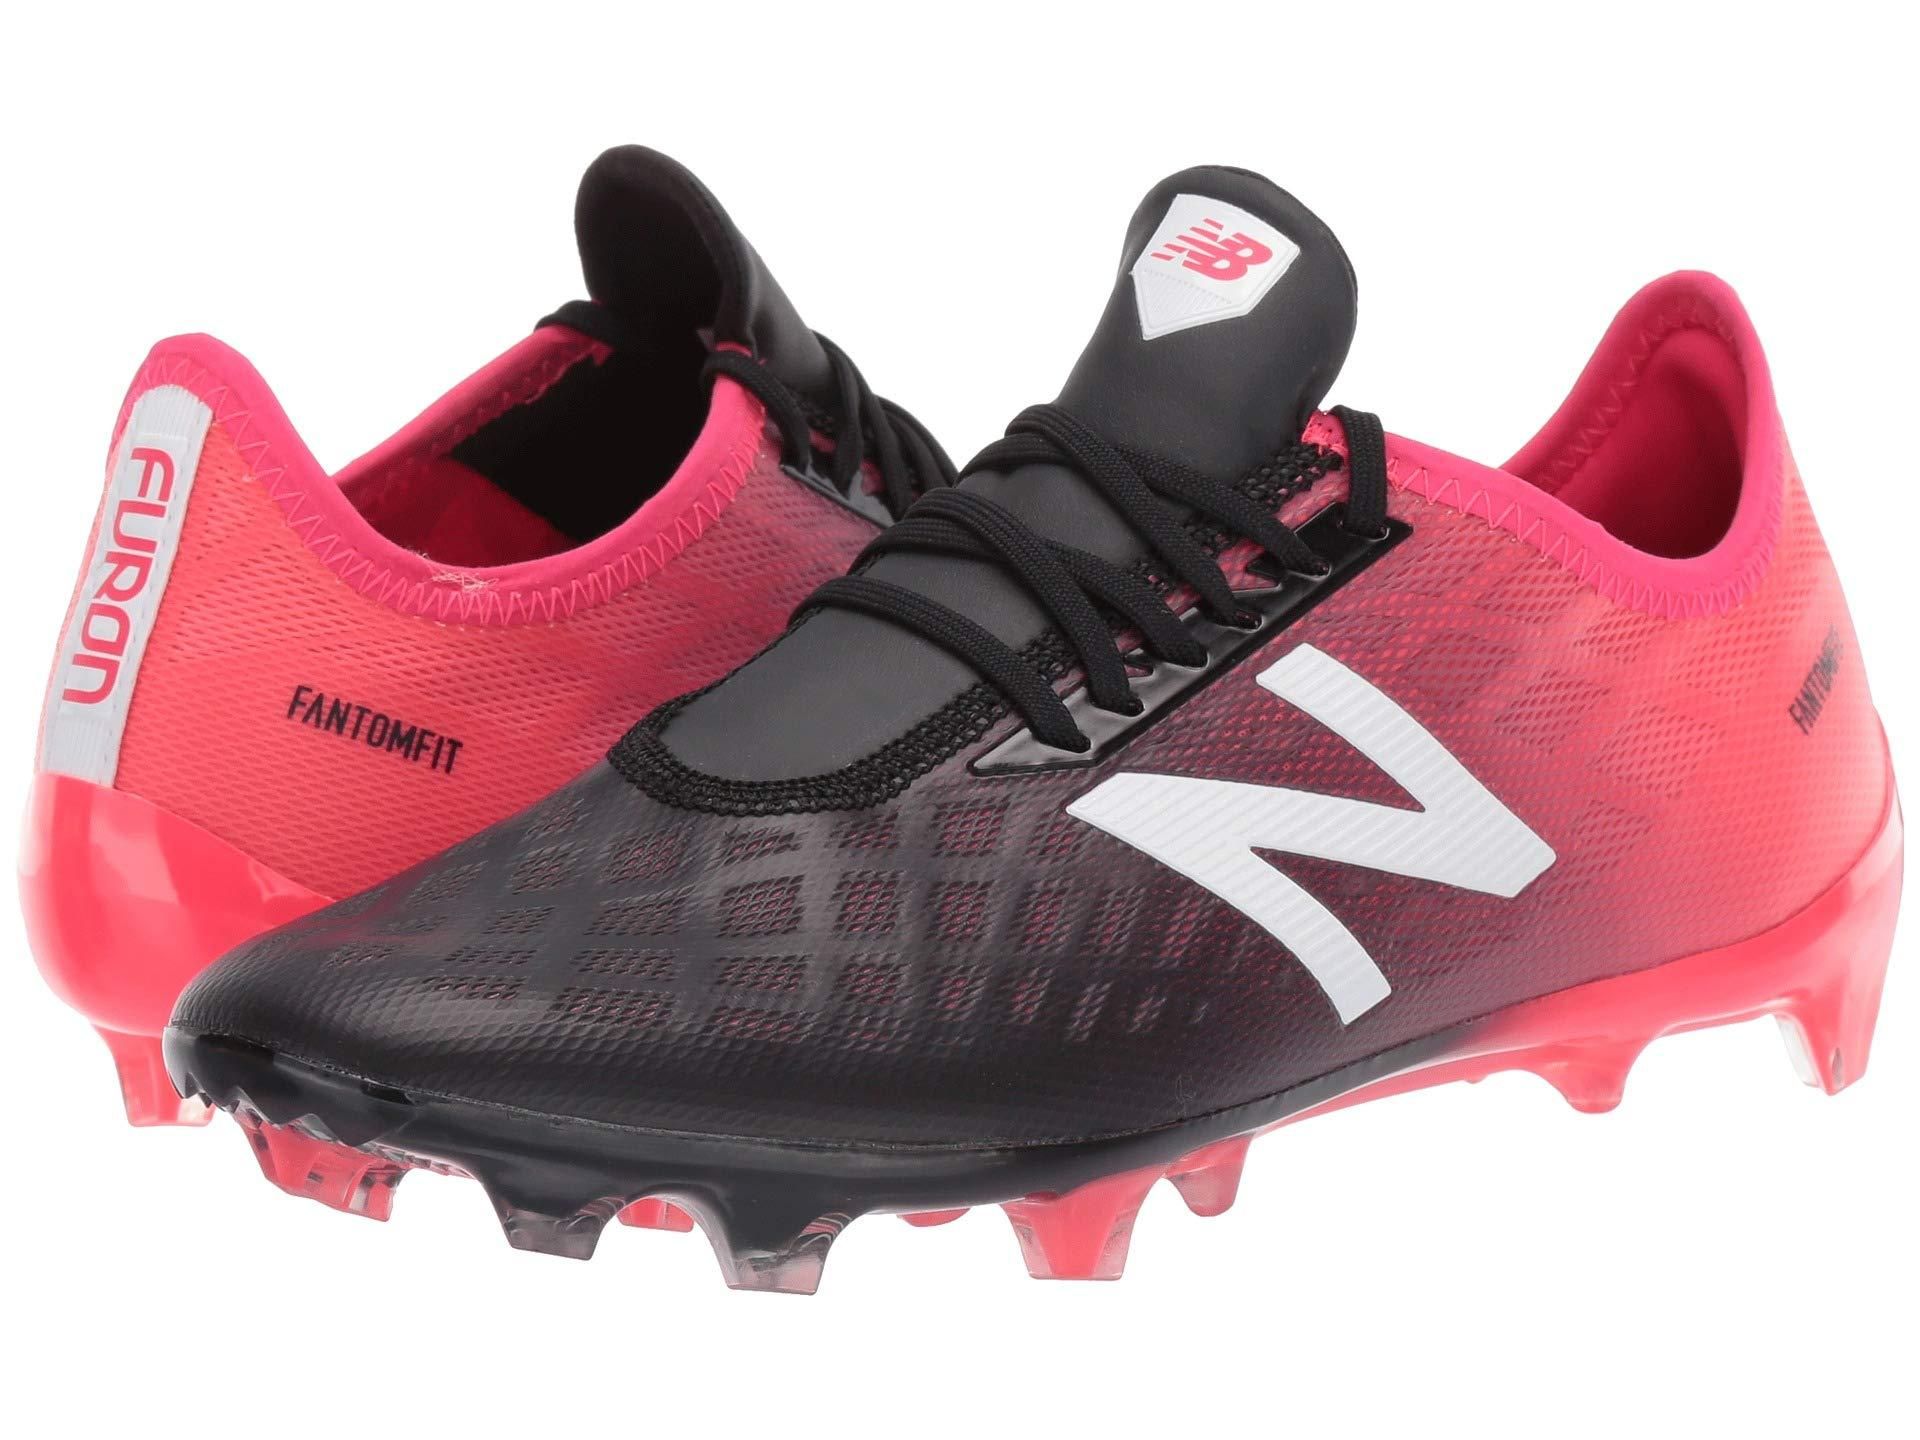 722a93c65abf Lyst - New Balance Furon 4.0 Pro Fg (bright Cherry black) Men s ...